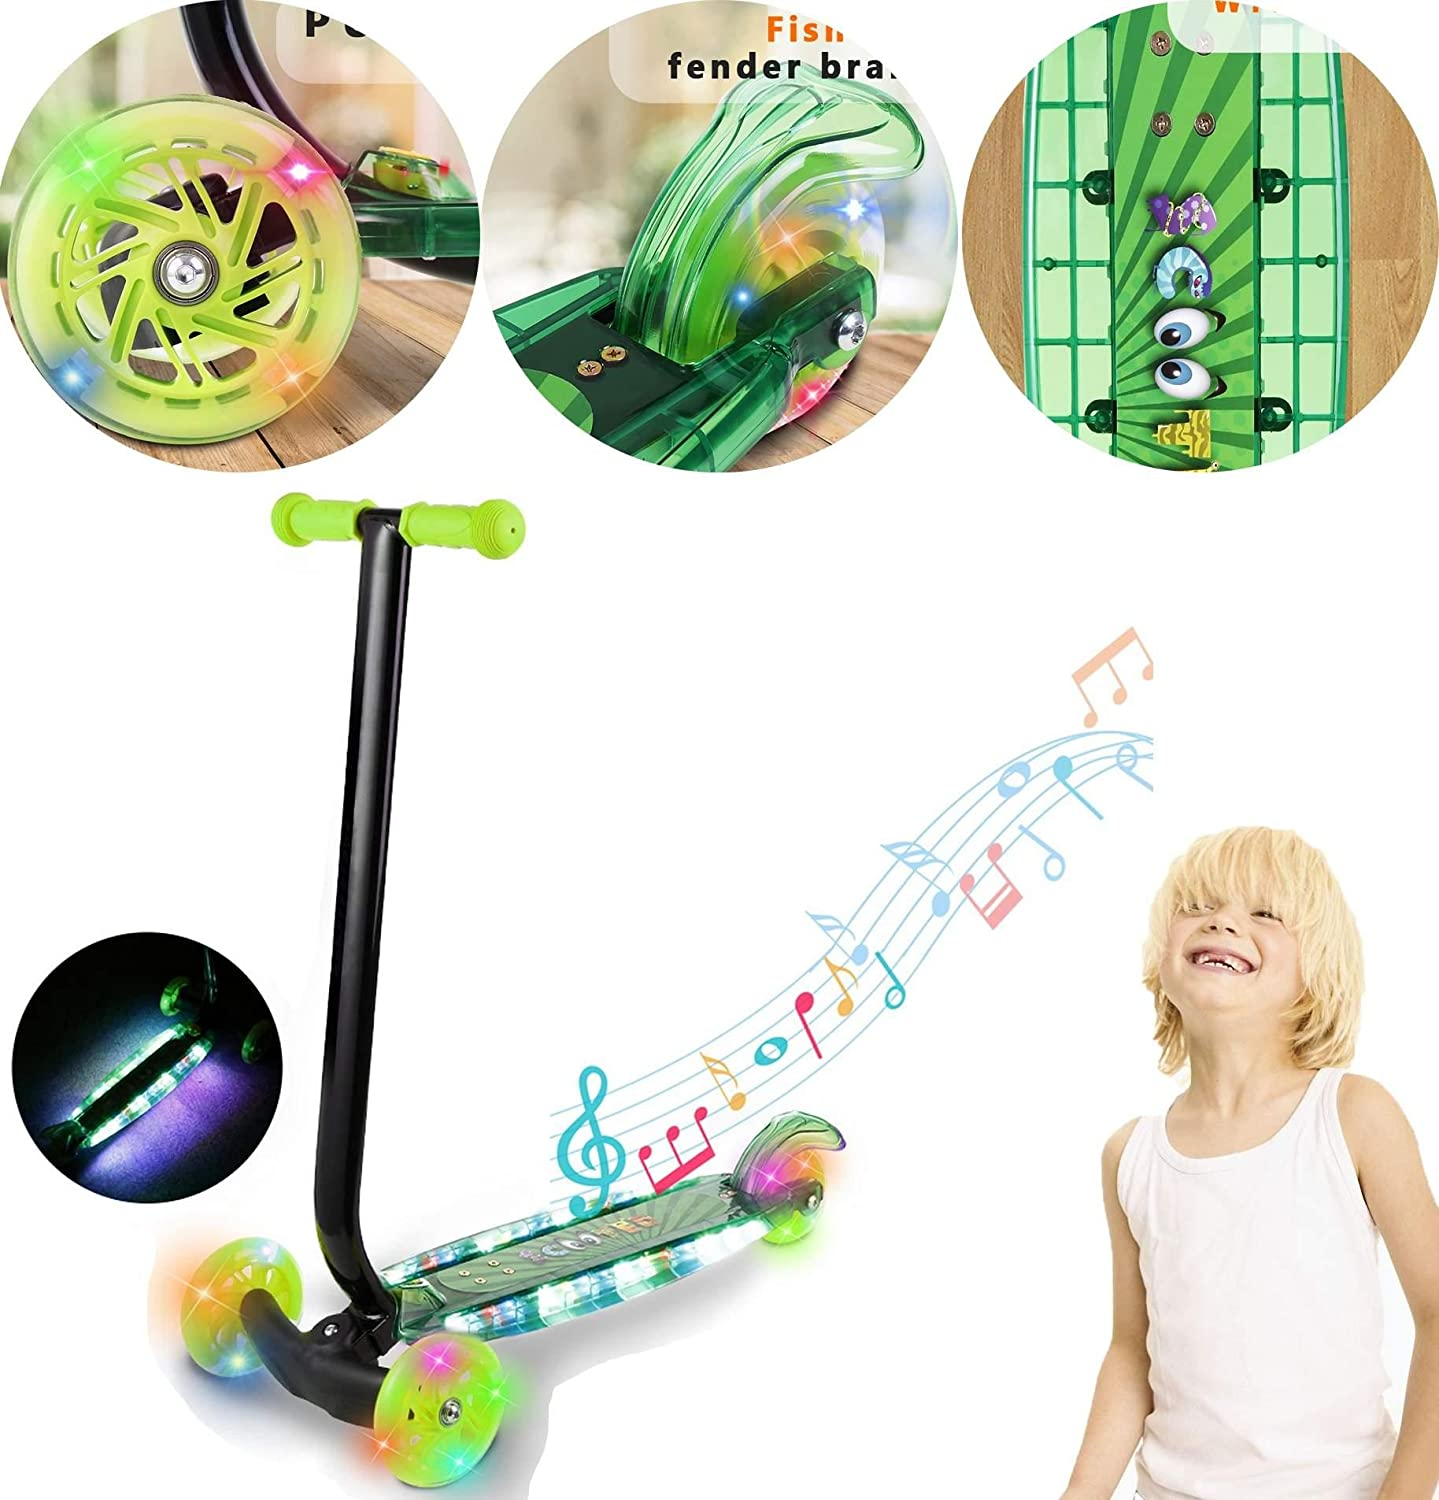 Kaluo Kids T-bar Push Kick Scooter with 3 LED Light Up Wheels/Board and Music for Kids Children Boys Girls Toddler Age 3-8 (US STOCK)